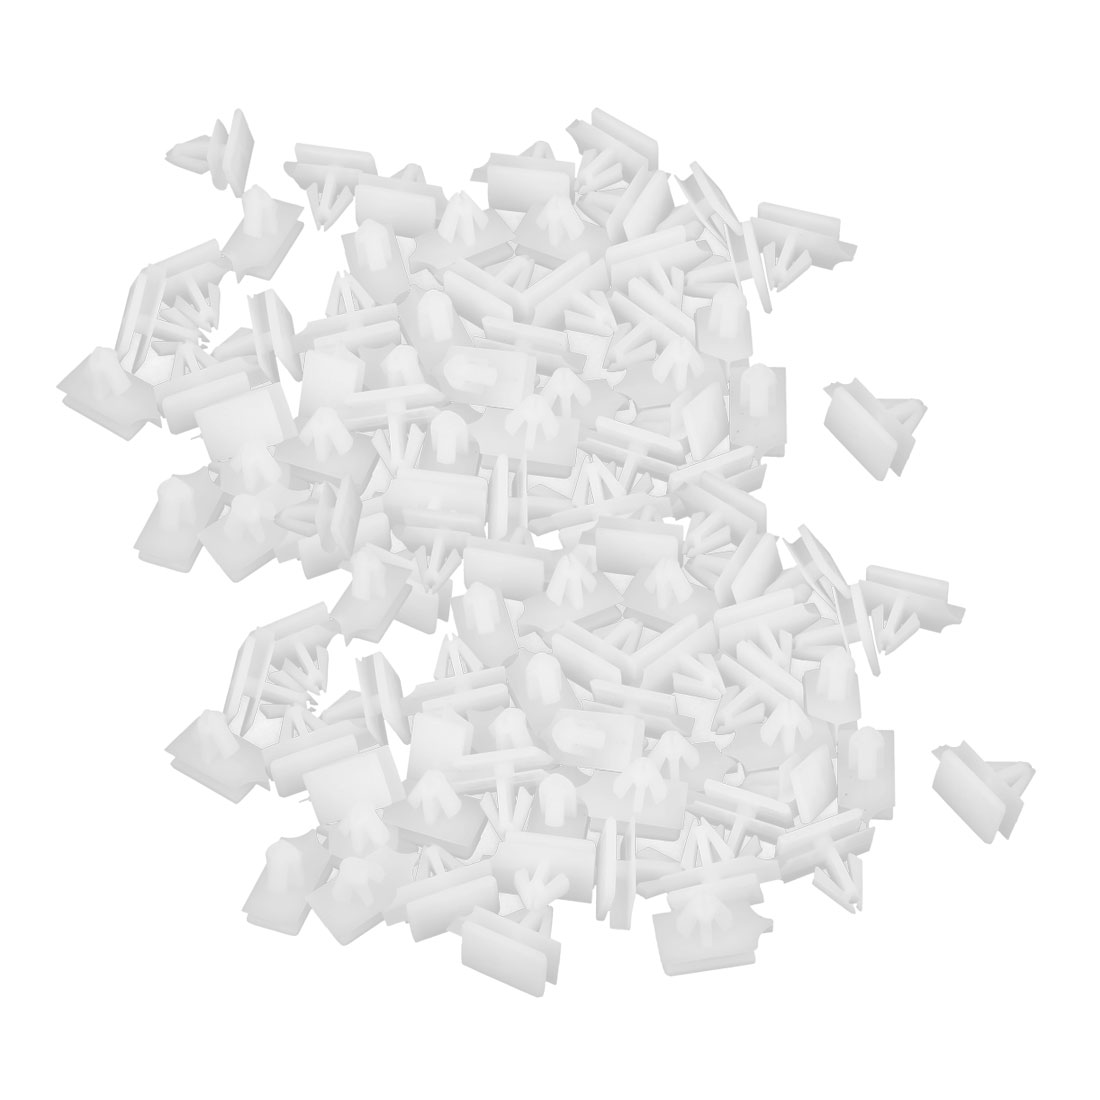 100 Pcs White Plastic Rivets Fastener 11 x 7mm Fit Hole for Car Bumper Fender